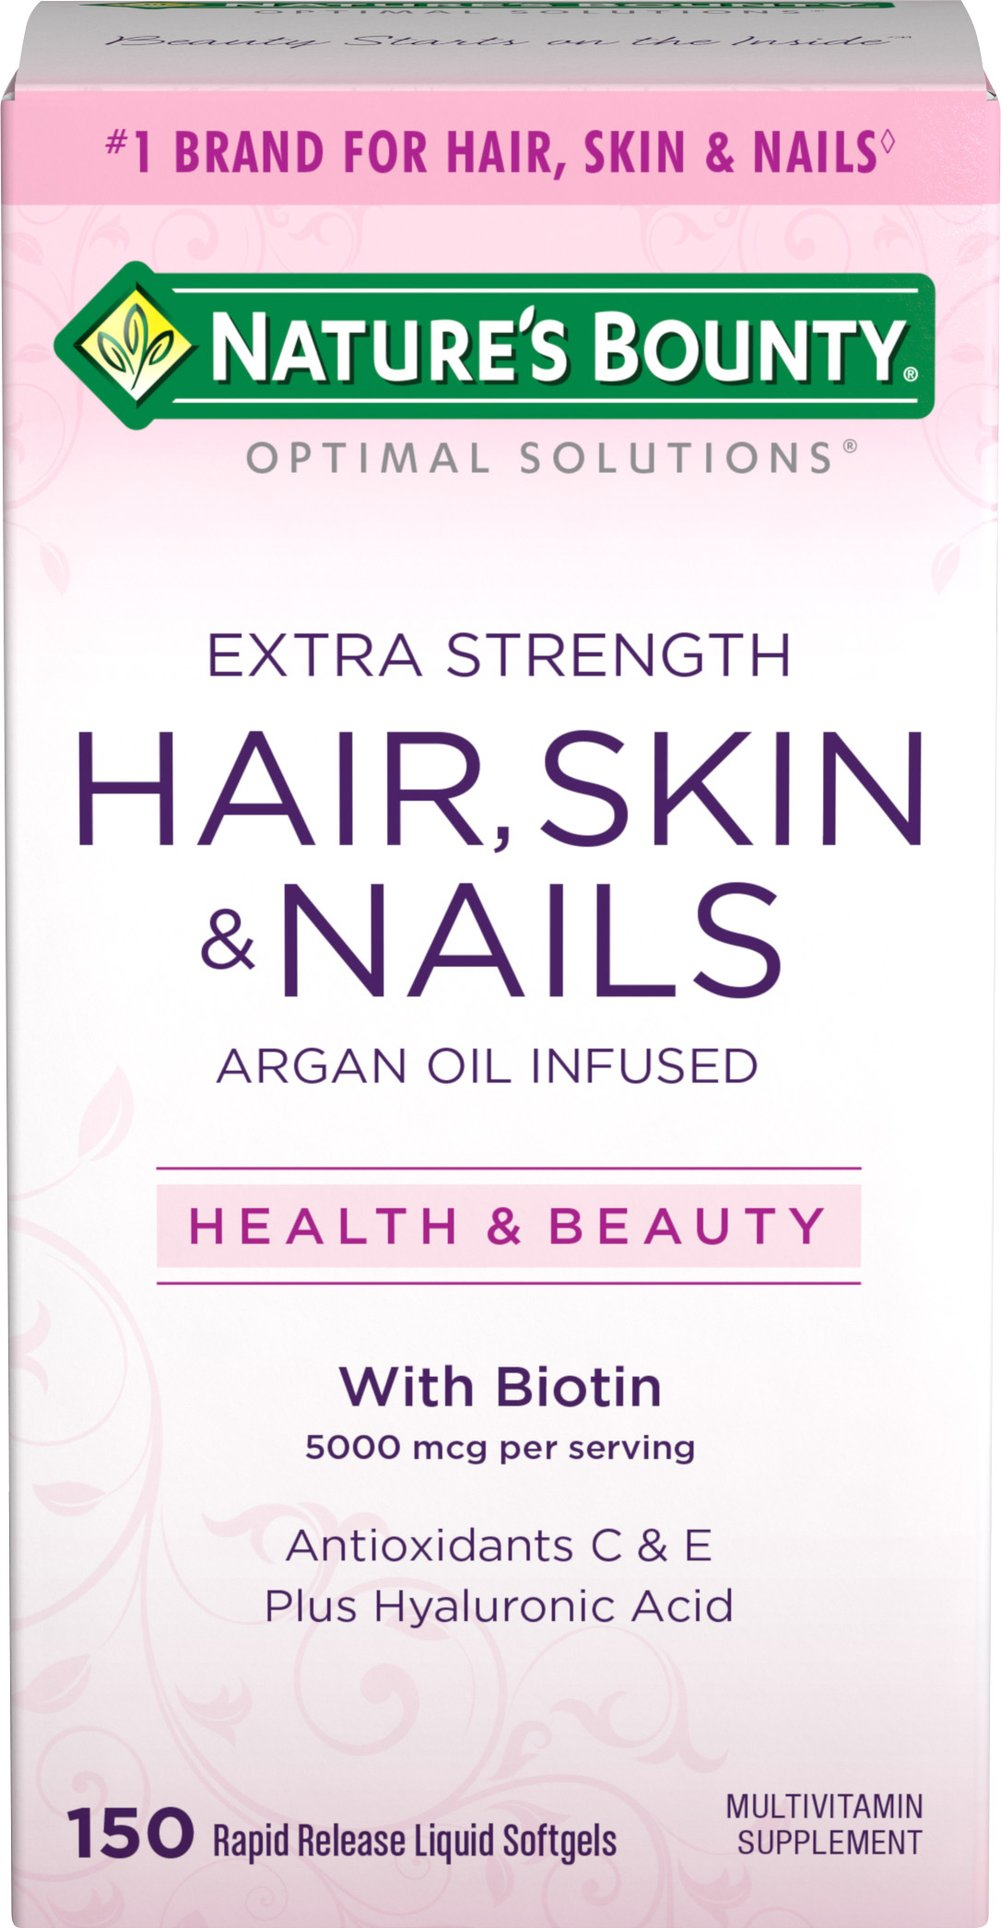 Hair, Skin and Nails Extra Strength with Argan Oil <p><strong>From the Manufacturer's Label:</strong></p><p>Being healthy is always beautiful. With Nature's Bounty Optimal Solutions Extra Strength Hair, Skin and Nails formula with Argan Oil, you'll look and feel great!</p><p>It contains just the right balance of nutrients to support lustrous hair, healthy nails, and vibrant skin.* This innovative formula provides you with the vital nutrients